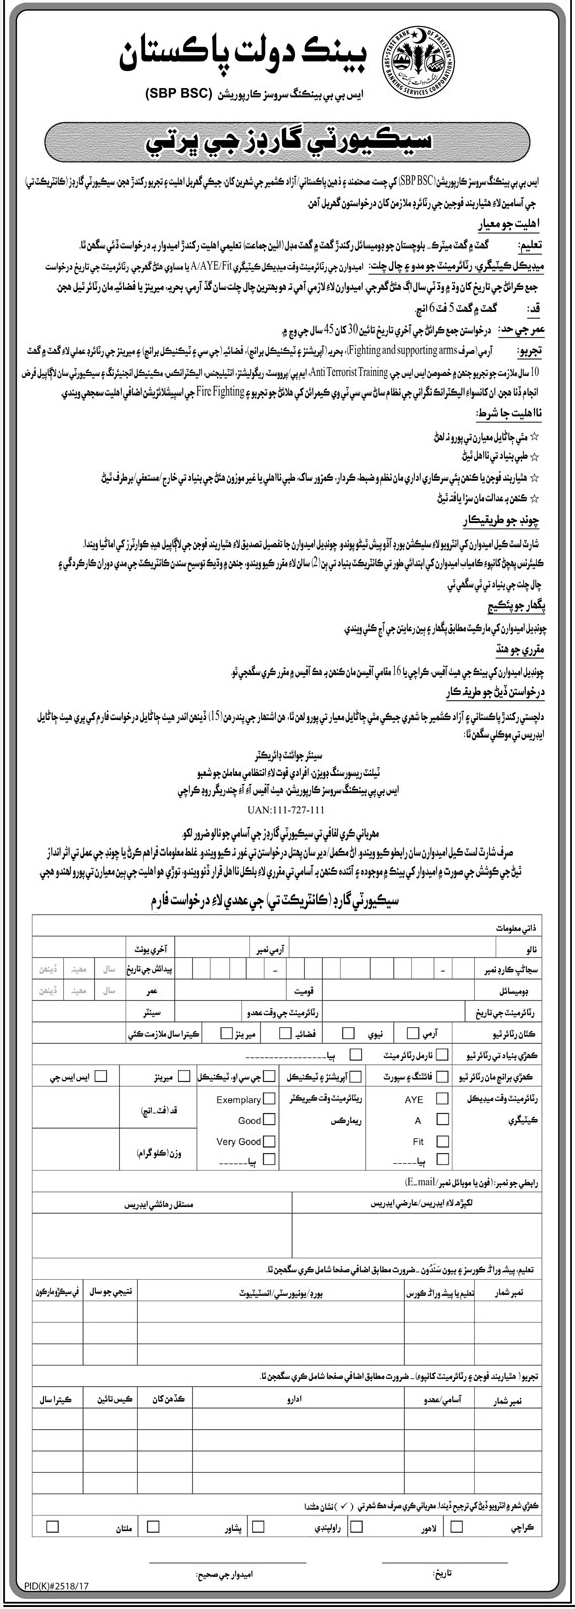 State Bank Of Pakistan Required Security Guards